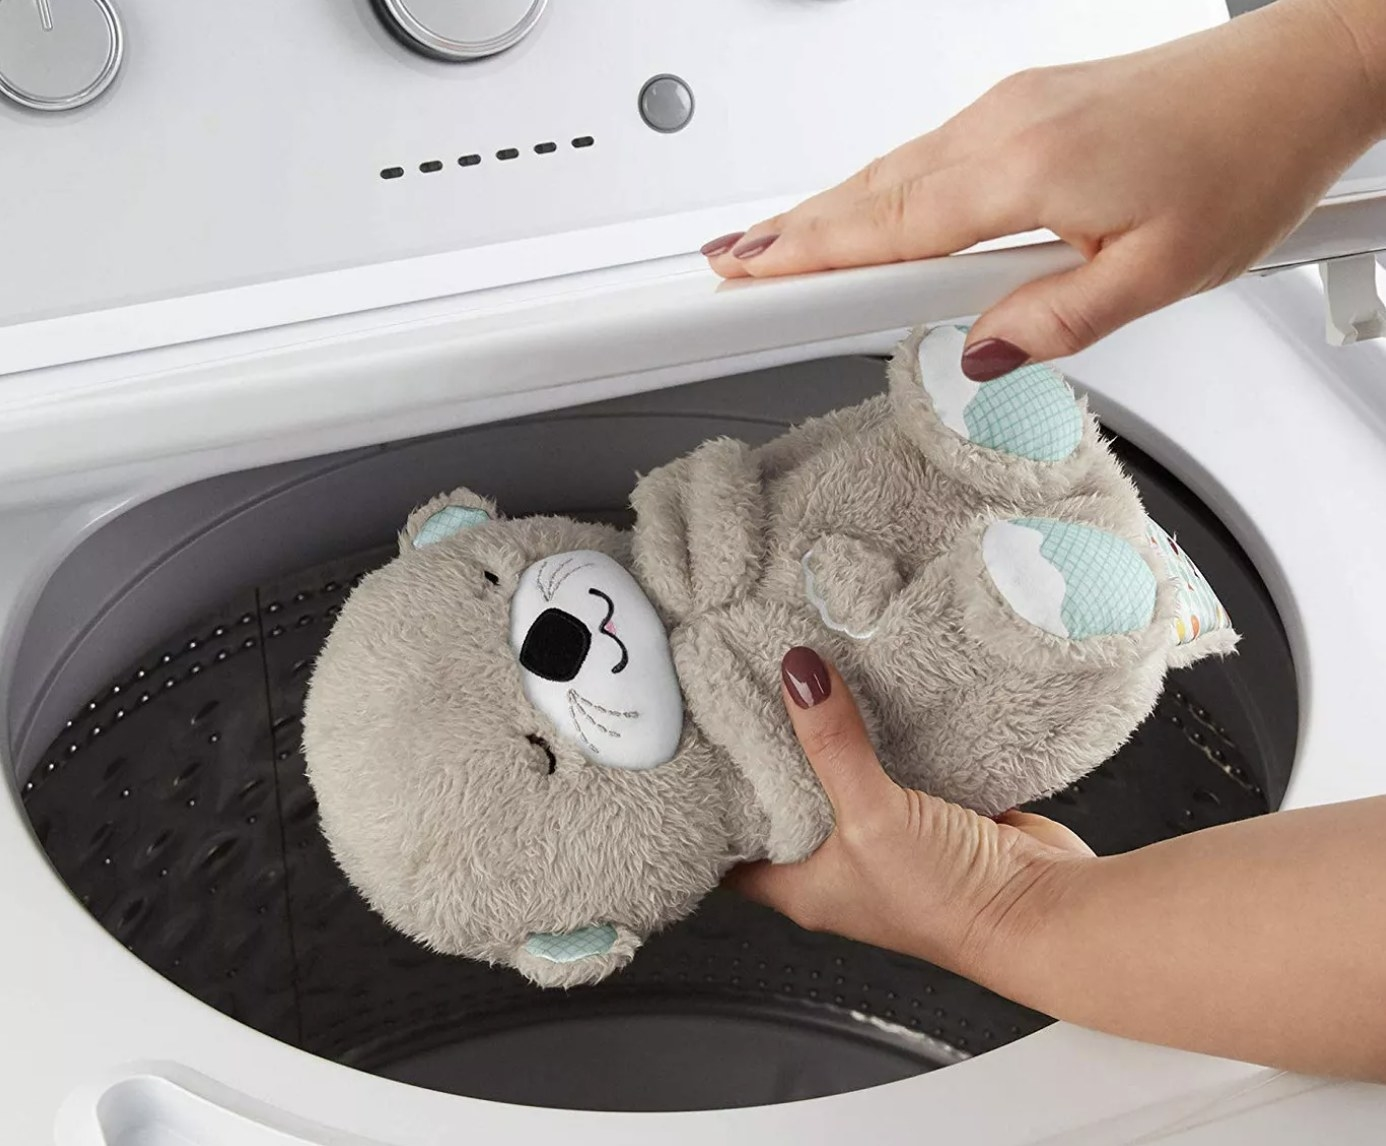 Person is holding otter plush over a washing machine